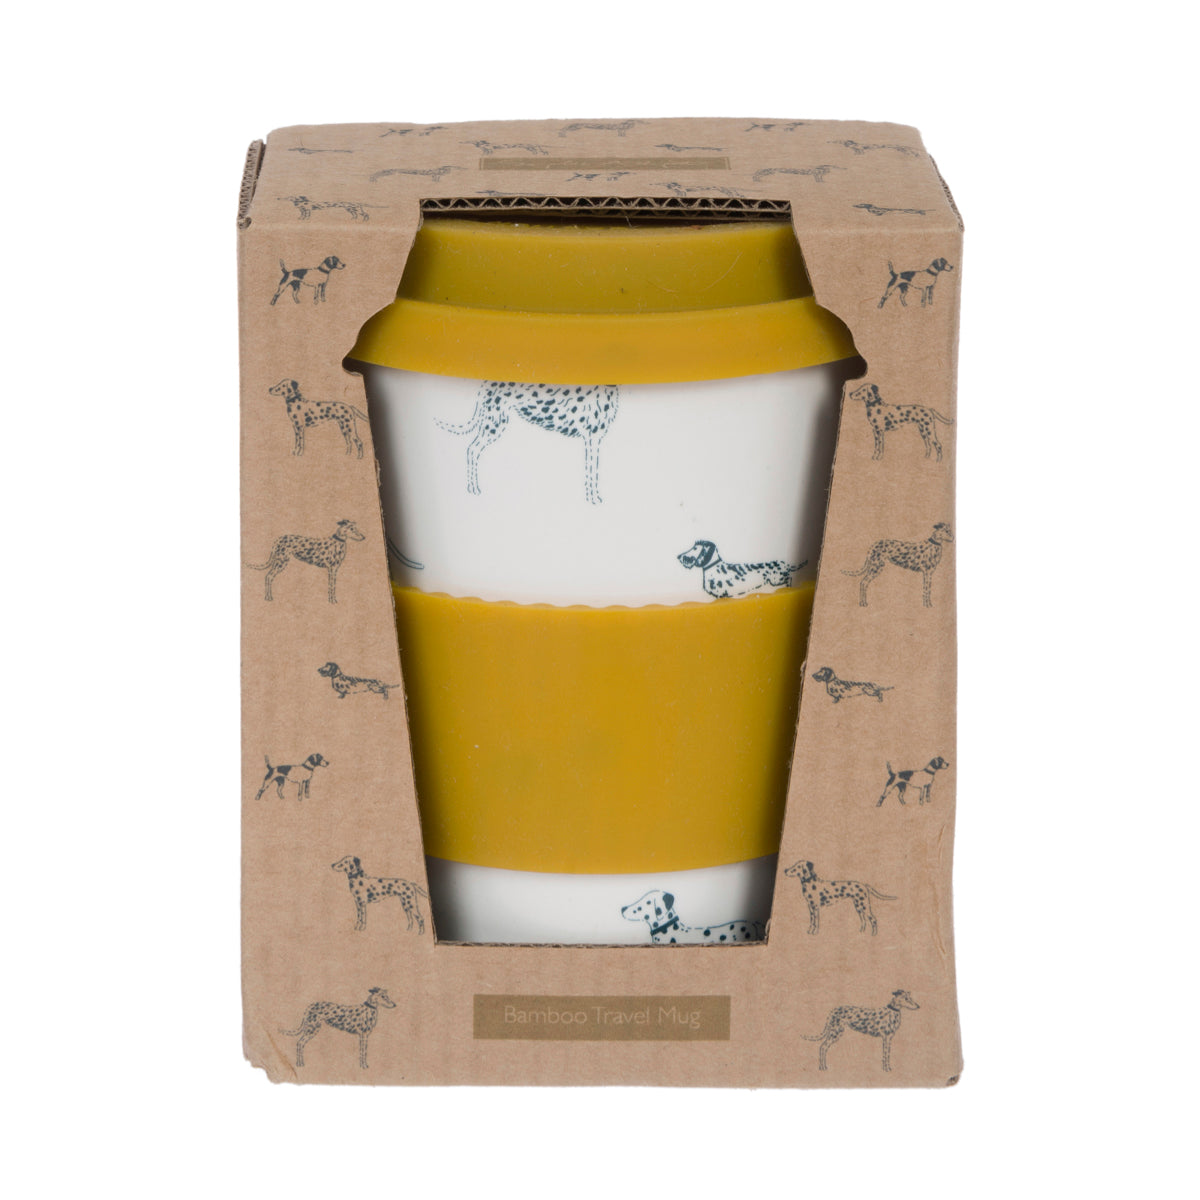 Fetch Bamboo Travel Mug Dog Design by Sophie Allport